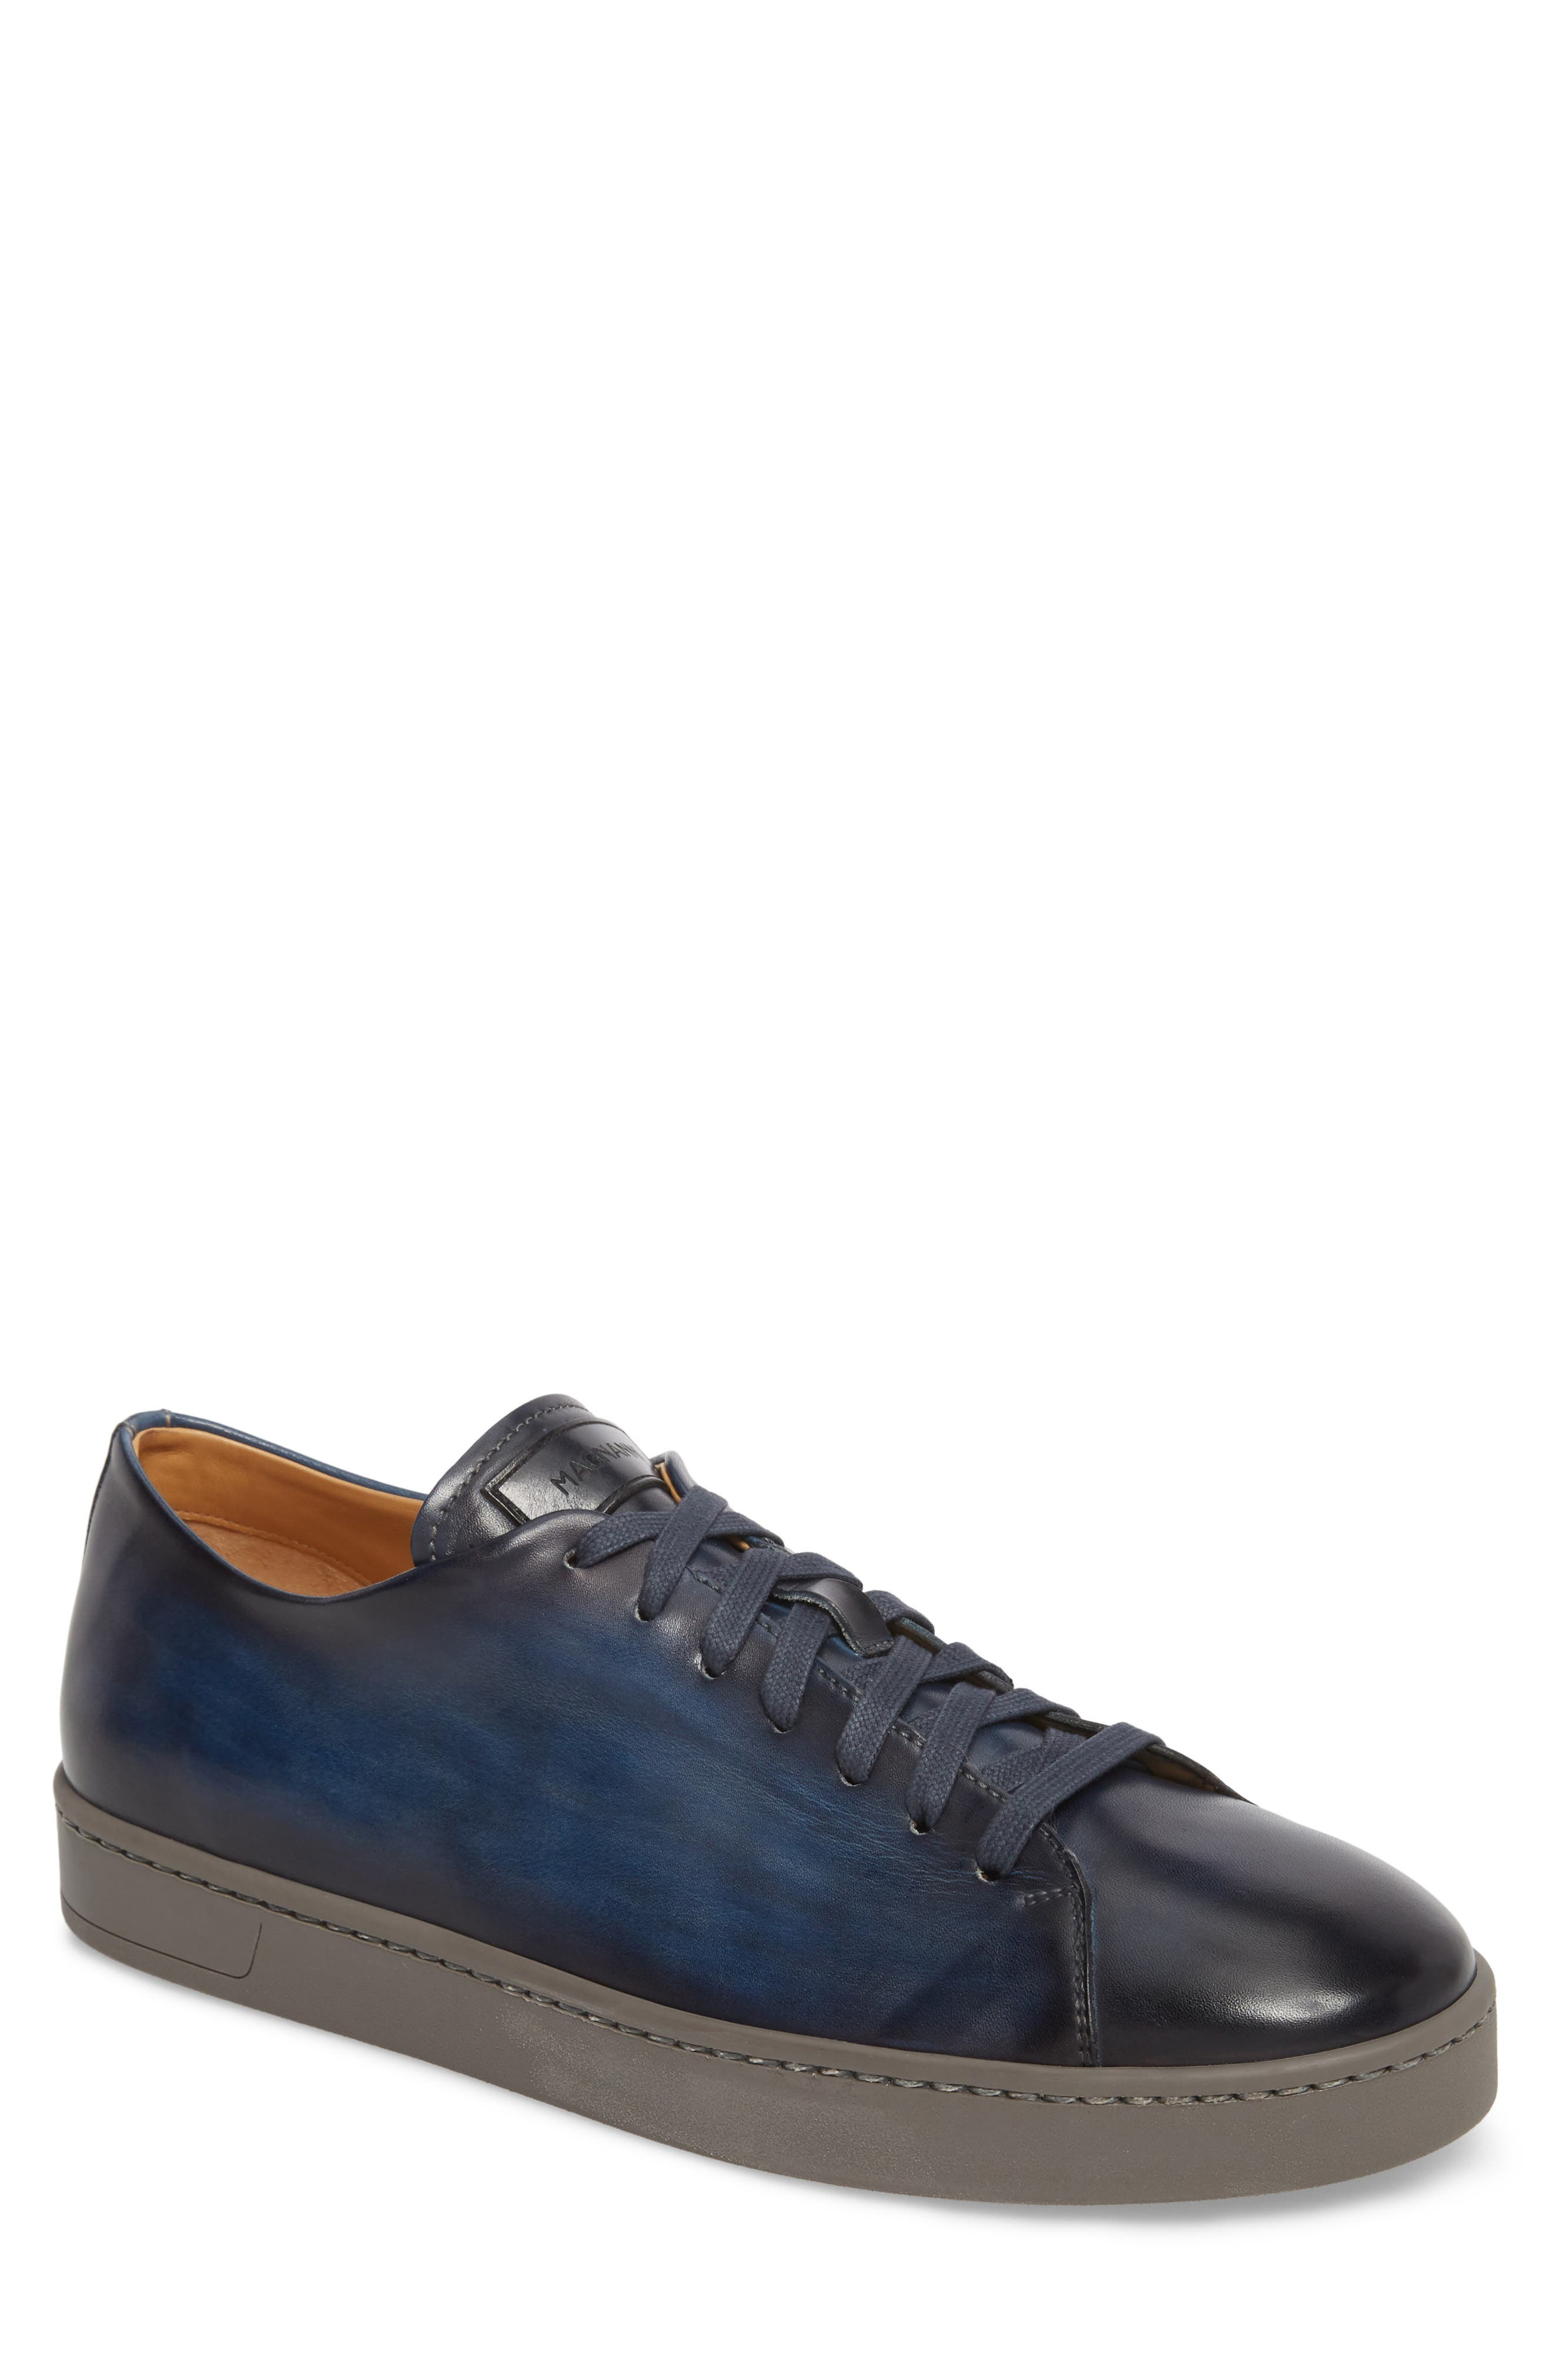 Belmont Lo Sneaker,                         Main,                         color, NAVY LEATHER